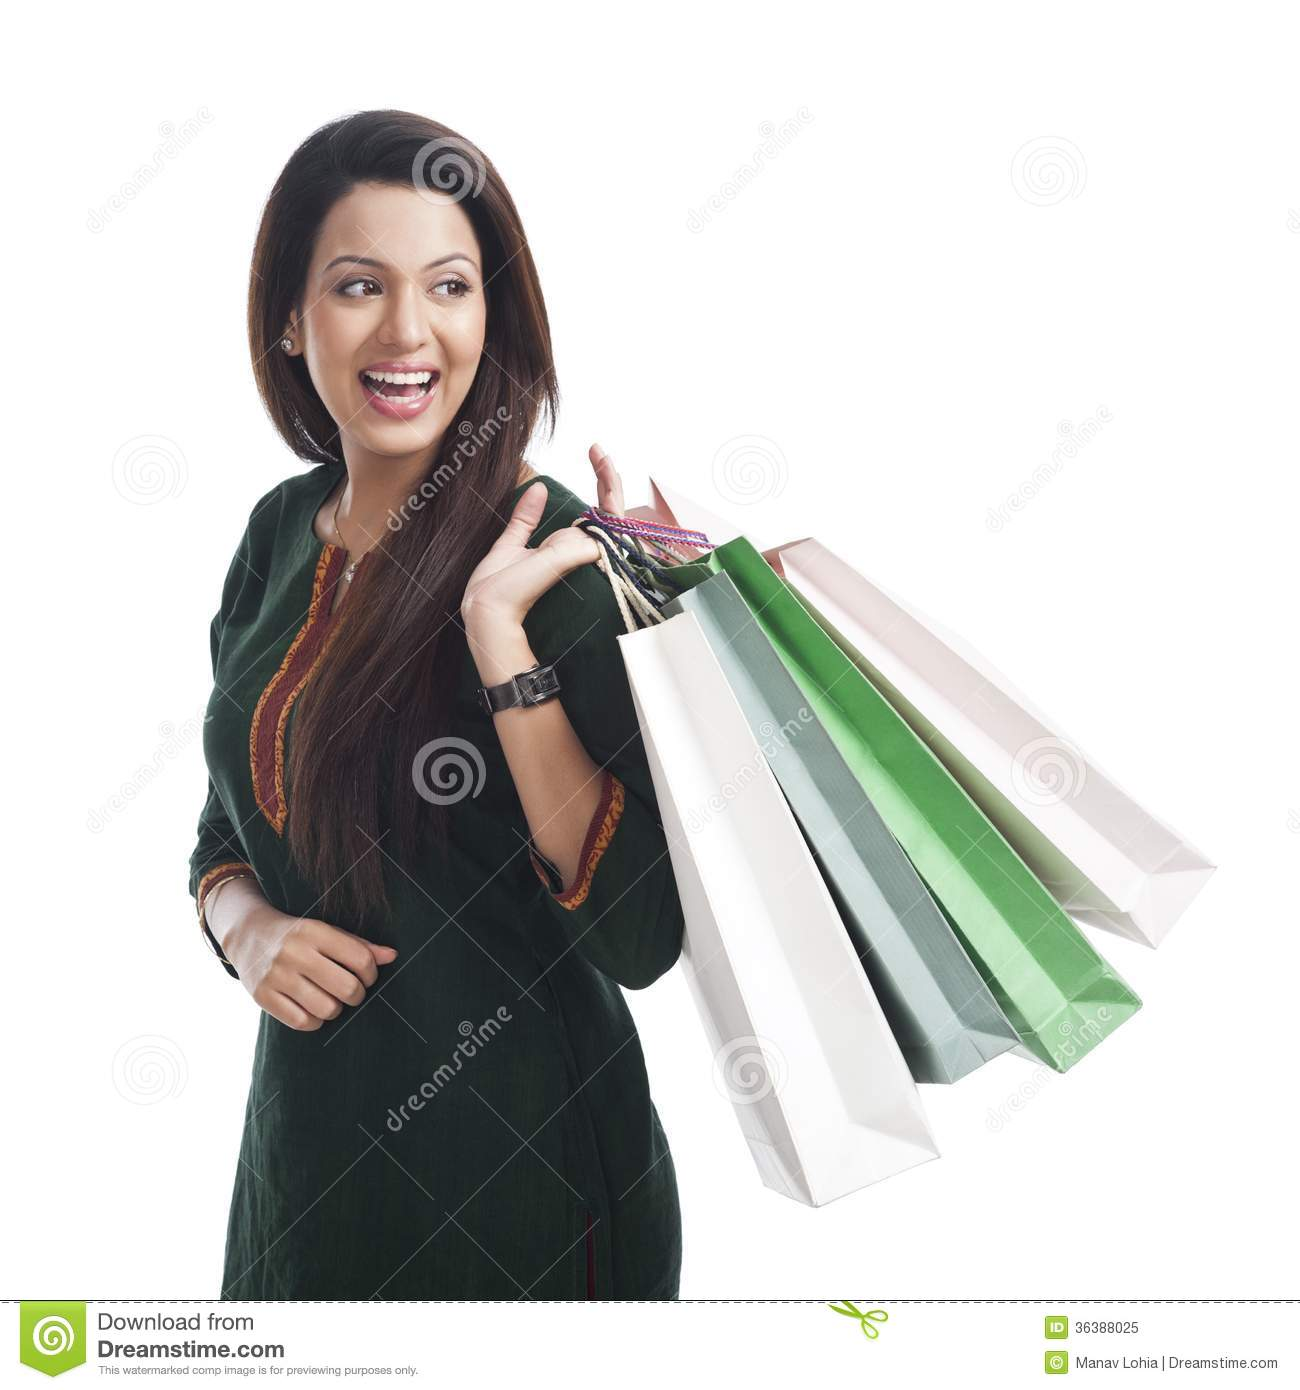 Original Young Woman Holding Shopping Bags Image